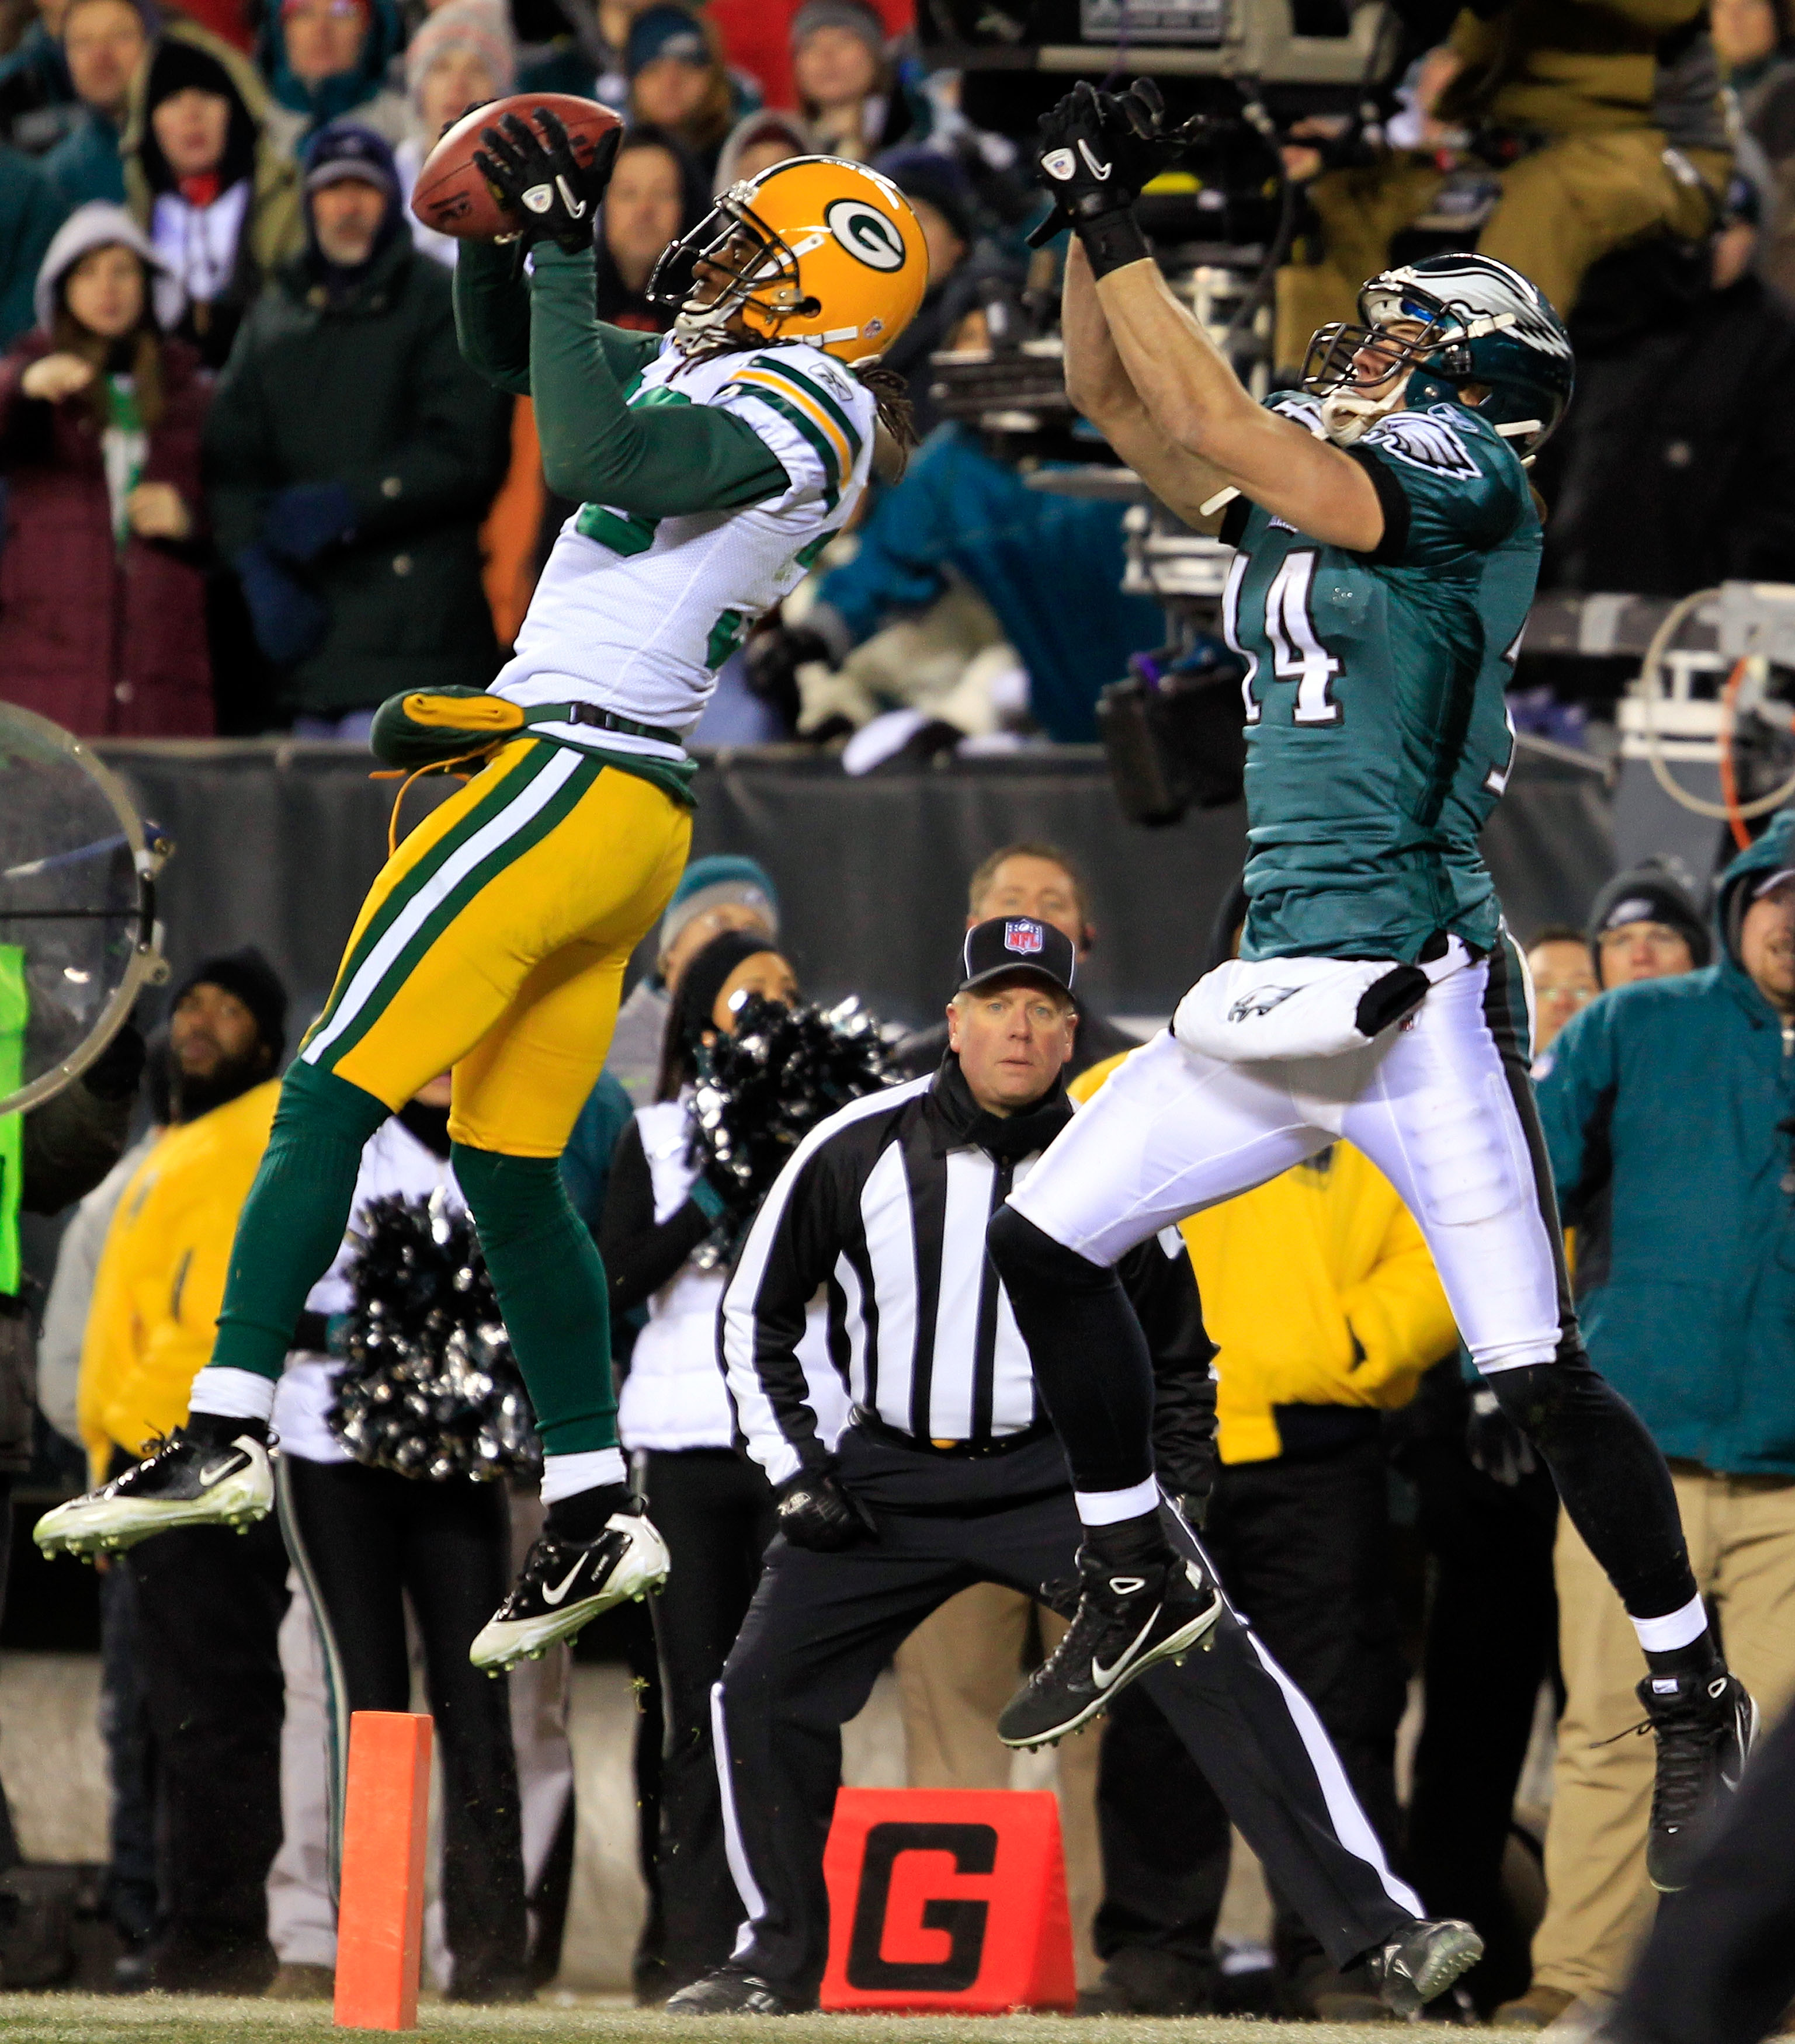 Tramon Williams doing what he does best